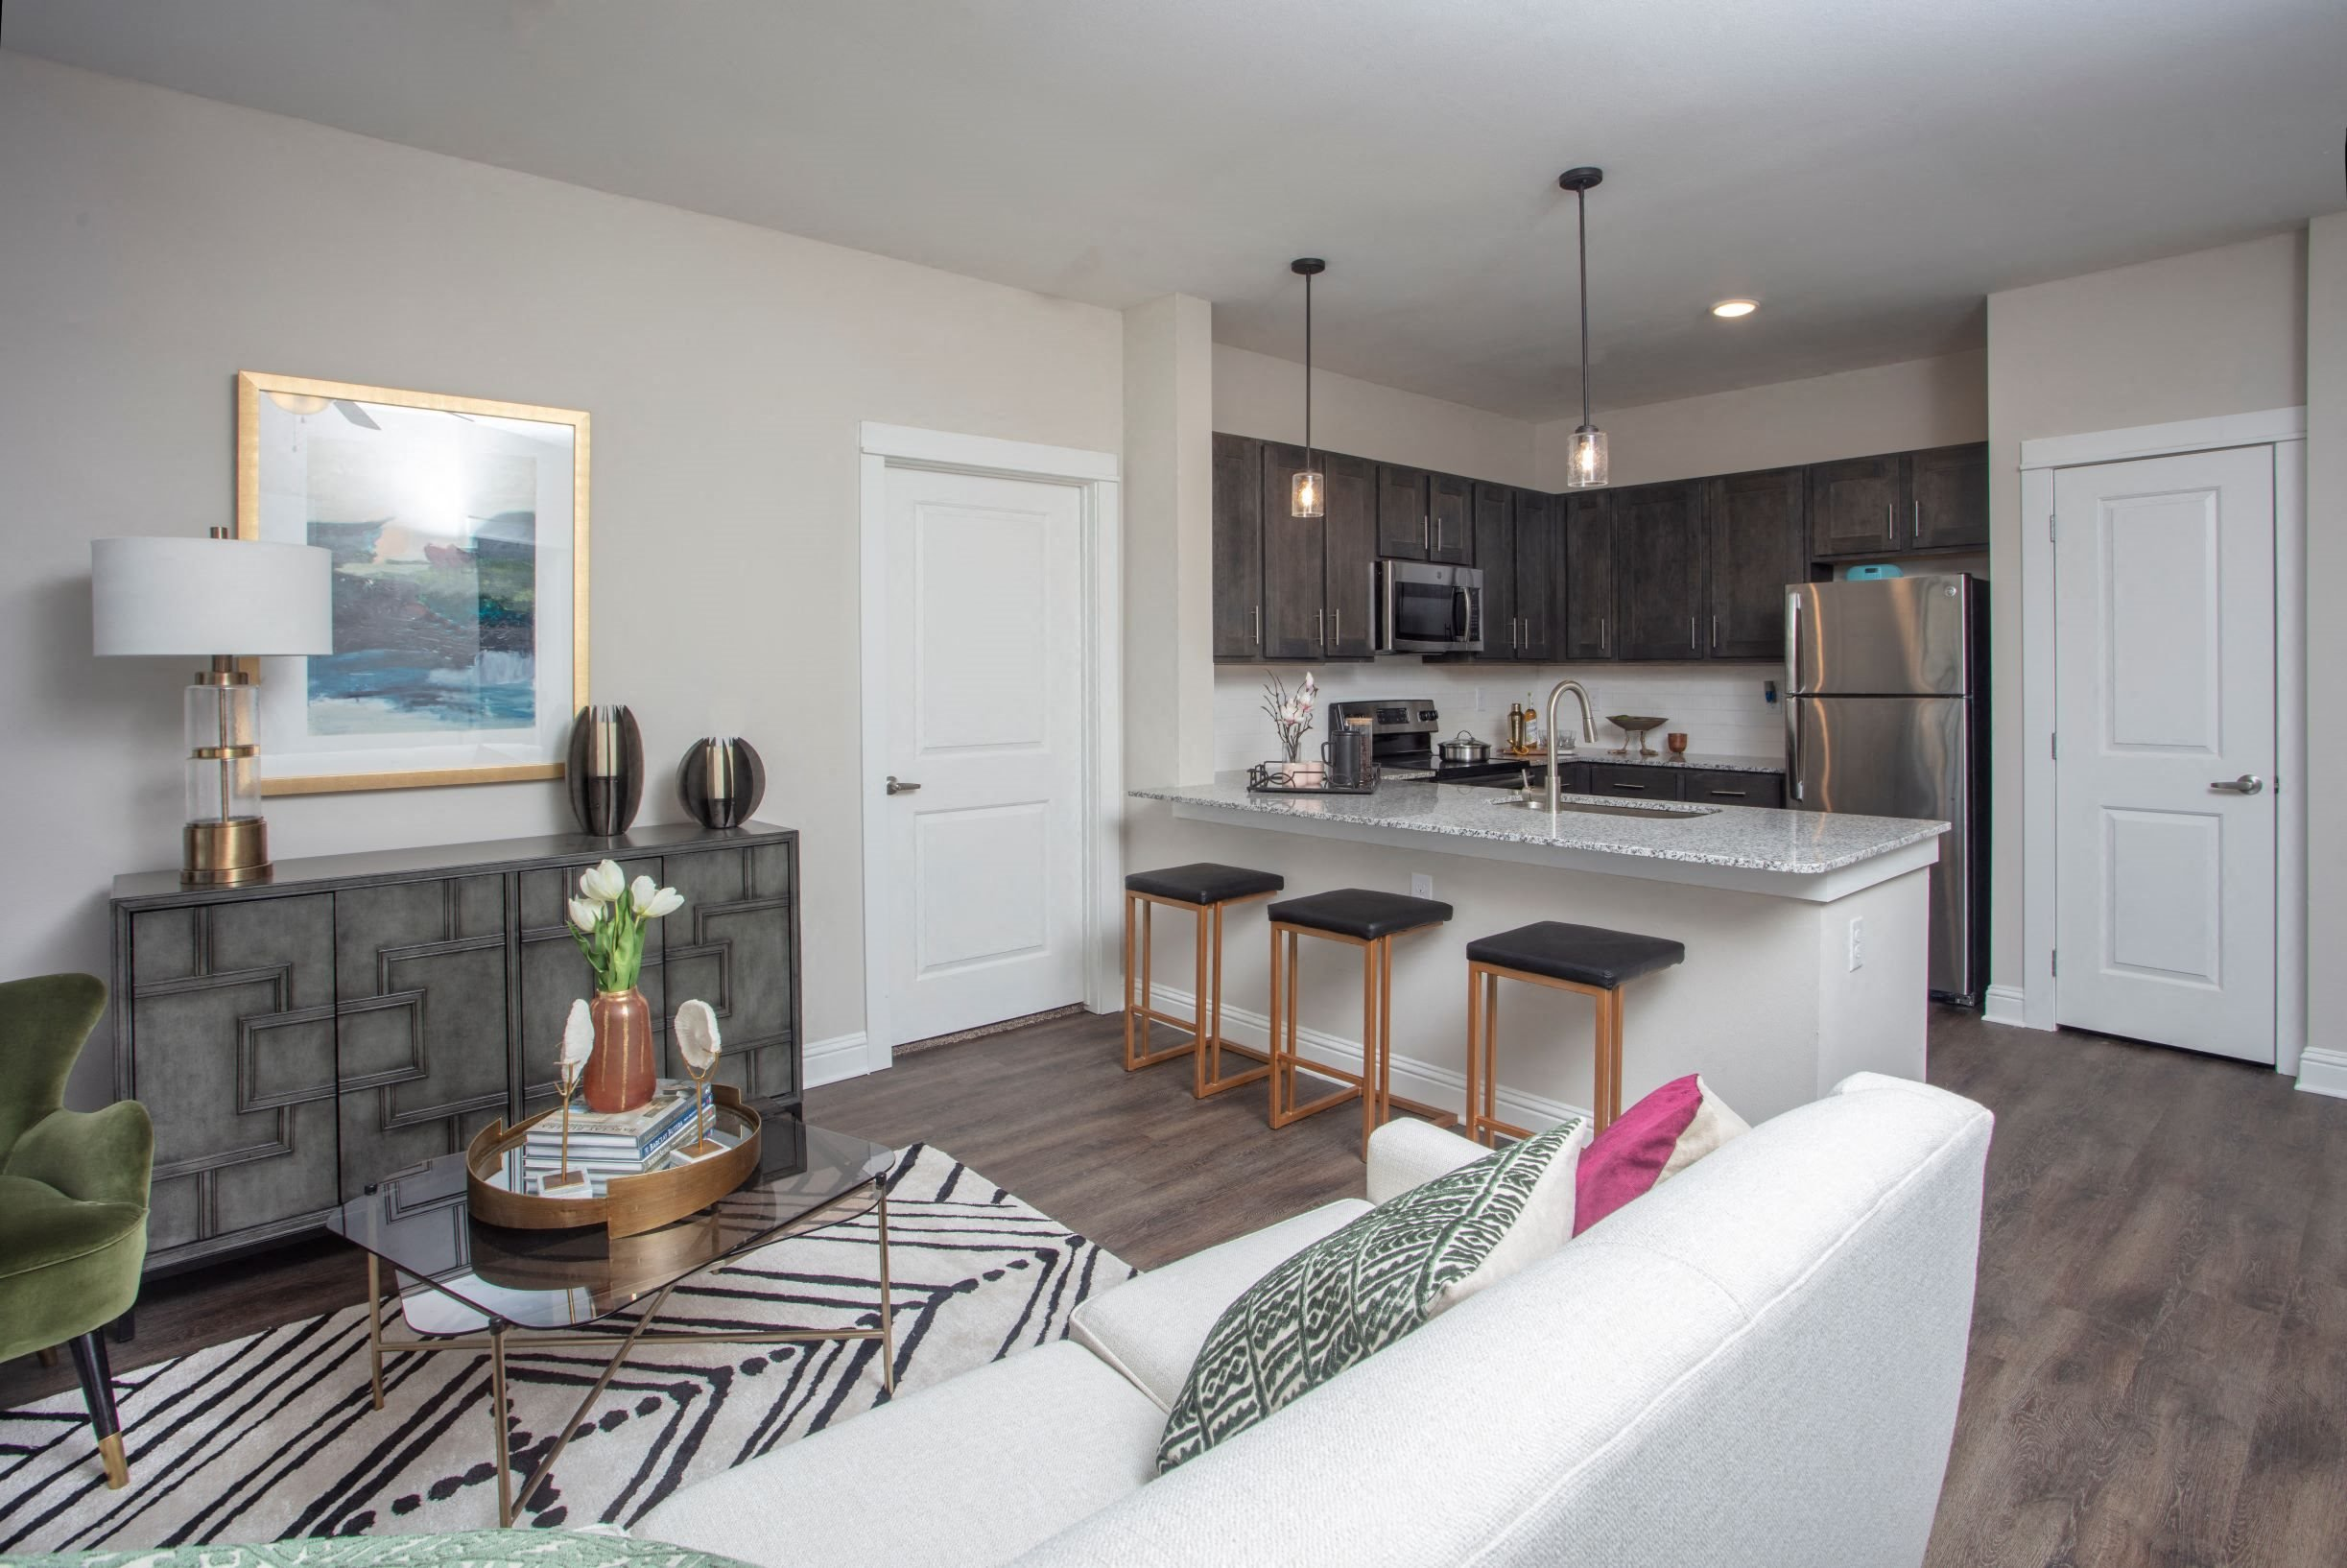 Kitchen and Living Room at Legacy at 2020